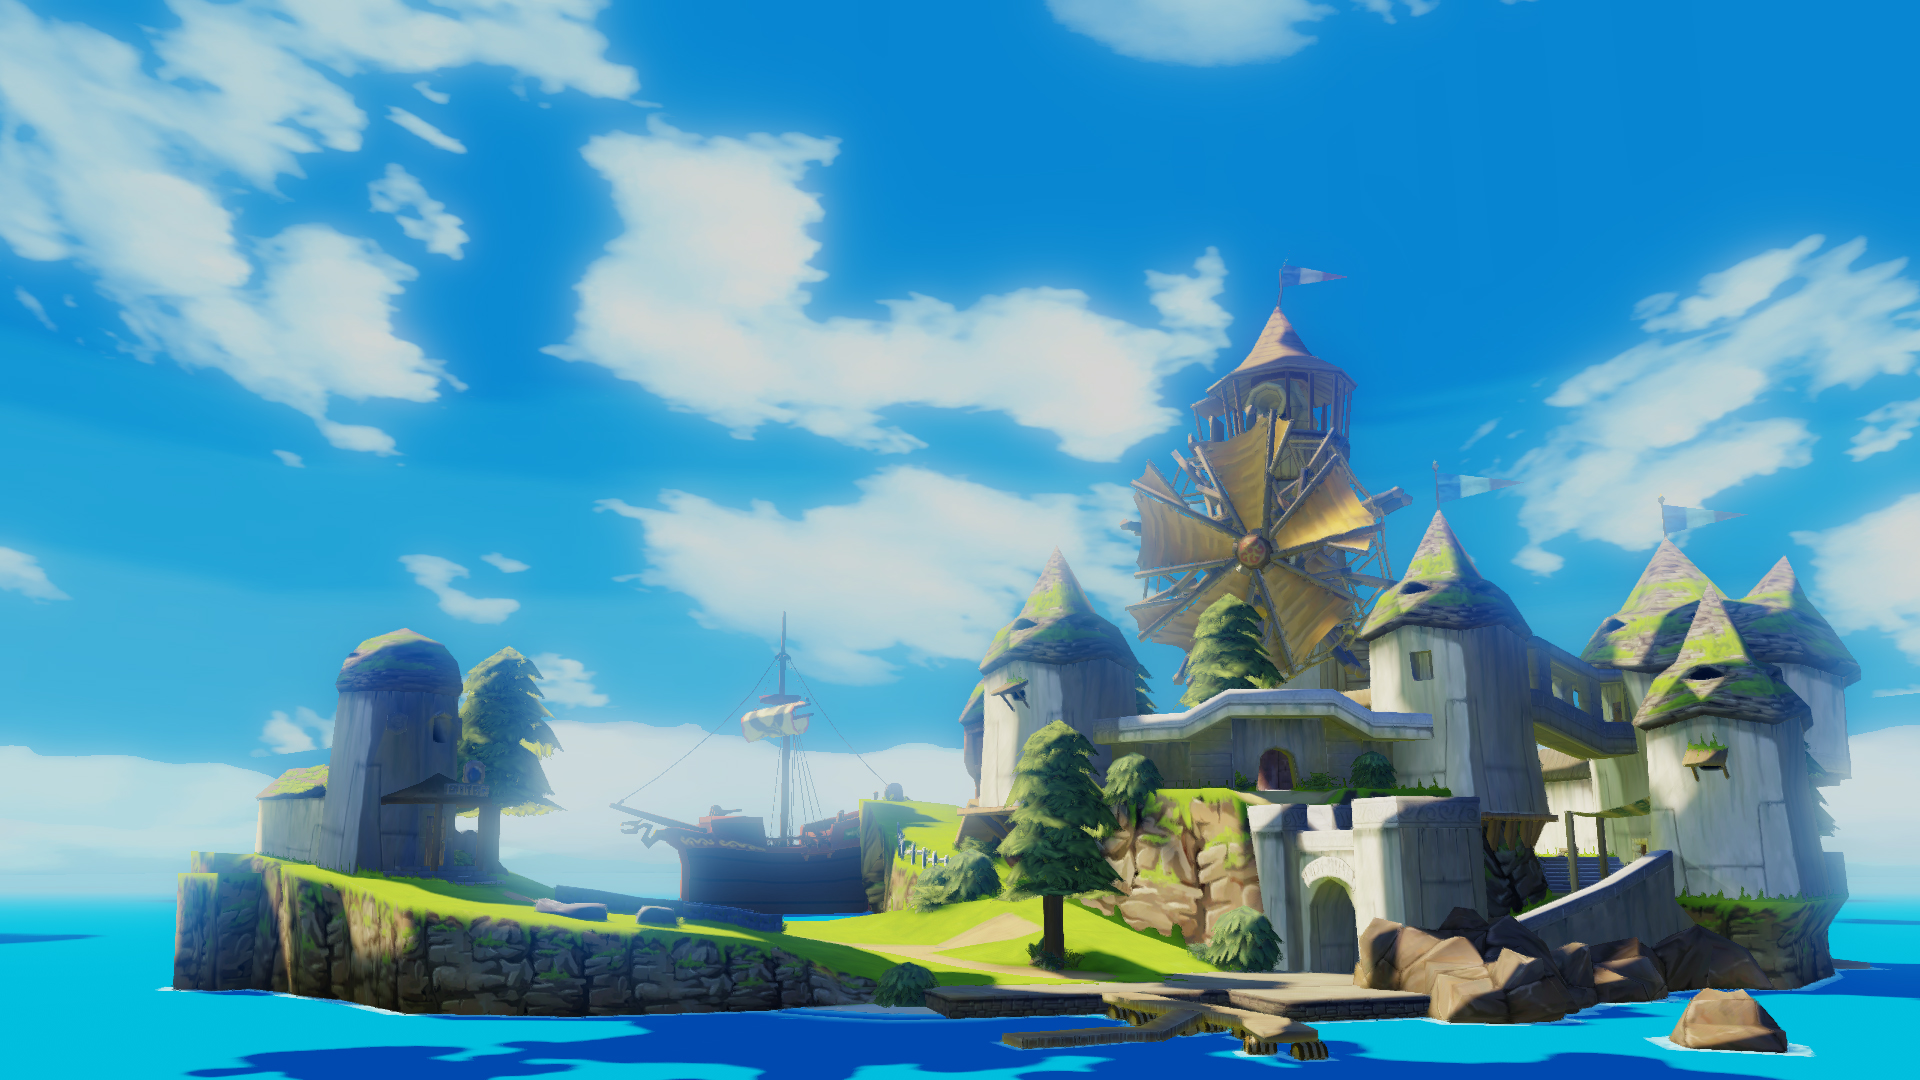 beloved game are you most looking forward to seeing in glorious HD 1920x1080